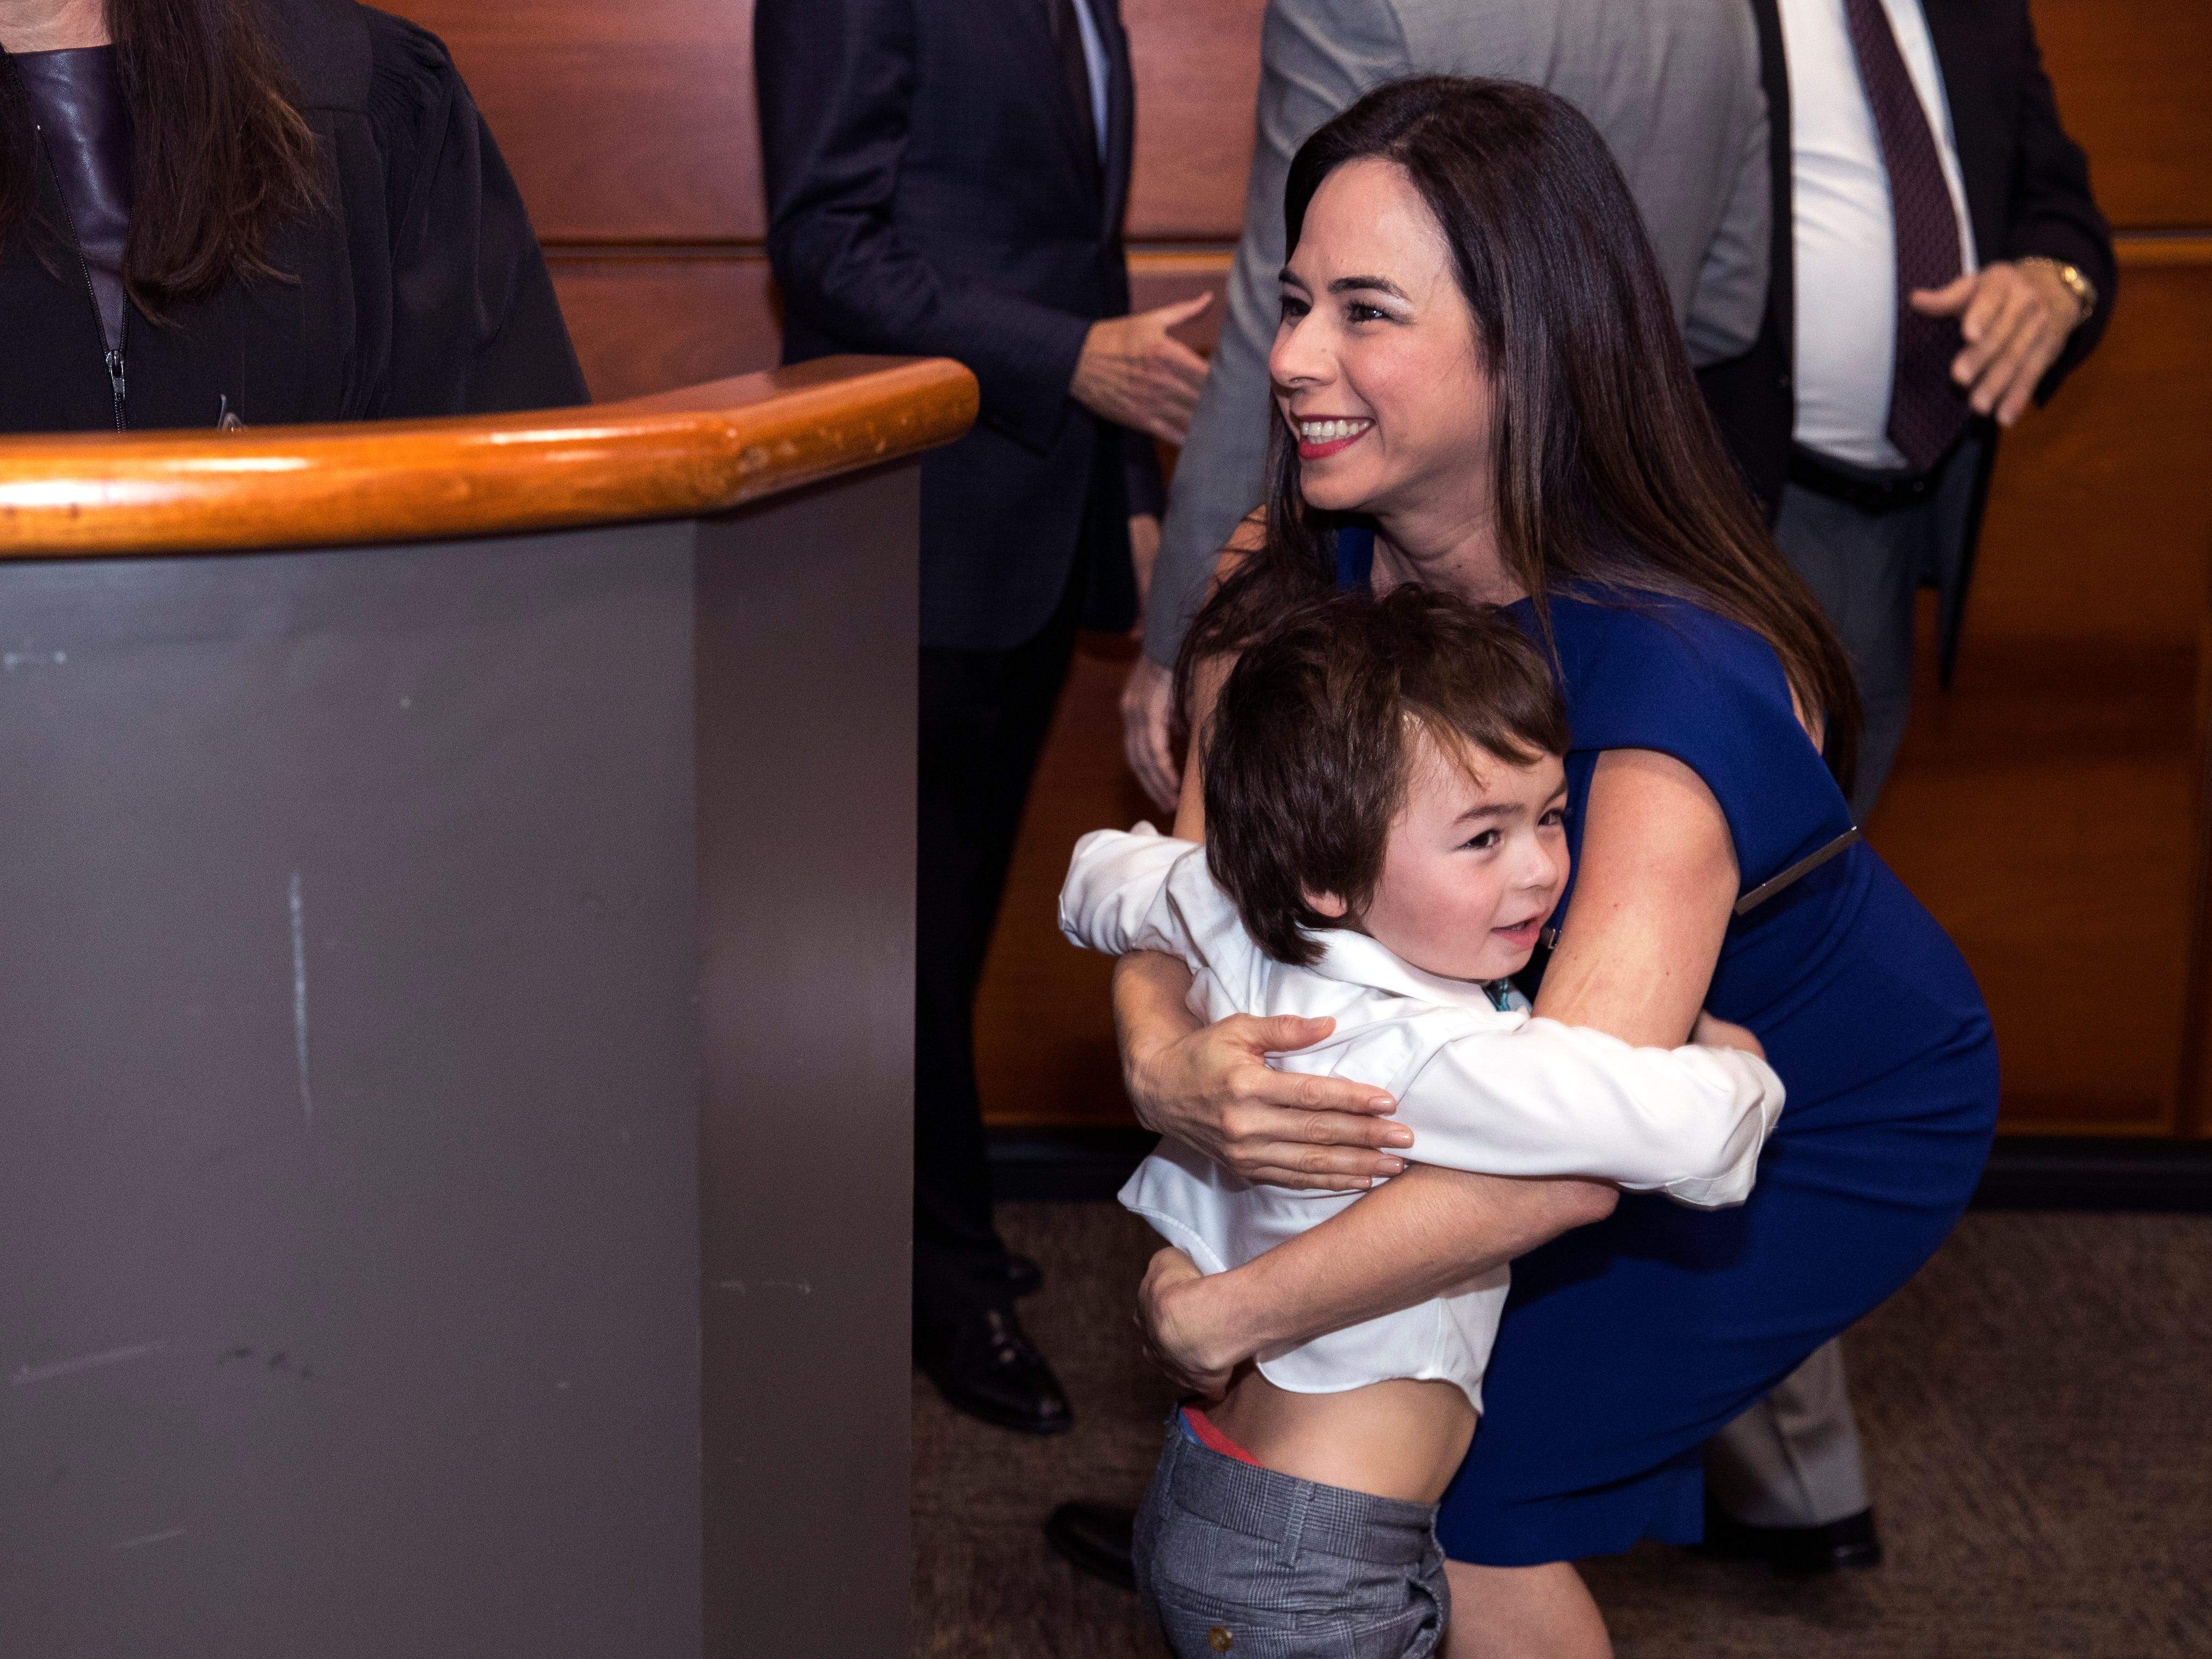 Catherine Tobin Hilliard hugs her son Dell Hilliard, 3, after being sworn in as Corpus Christi Port Commissioner, six of her seven children were there to see her sworn in, the other was away at college, on February 19, 2019, she will fill out the remainder of of Nueces County Judge Barbara Canales' term on the port commission, which ends Dec. 31, 2019.